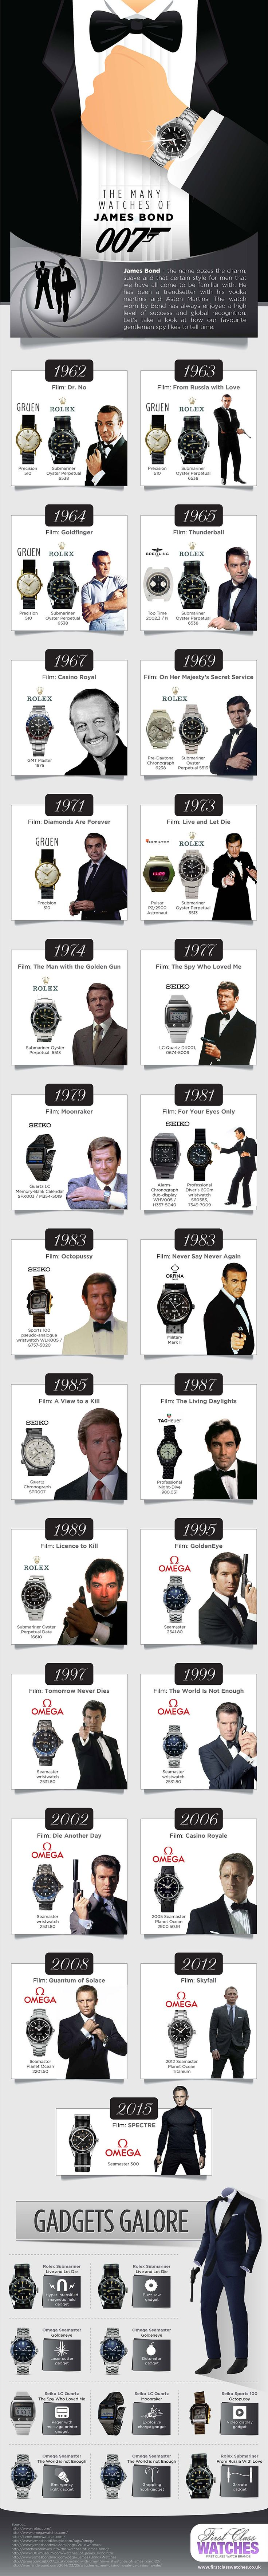 The Many Watches of James Bond - Spectre Infographic http://amzn.to/2sqsgS2